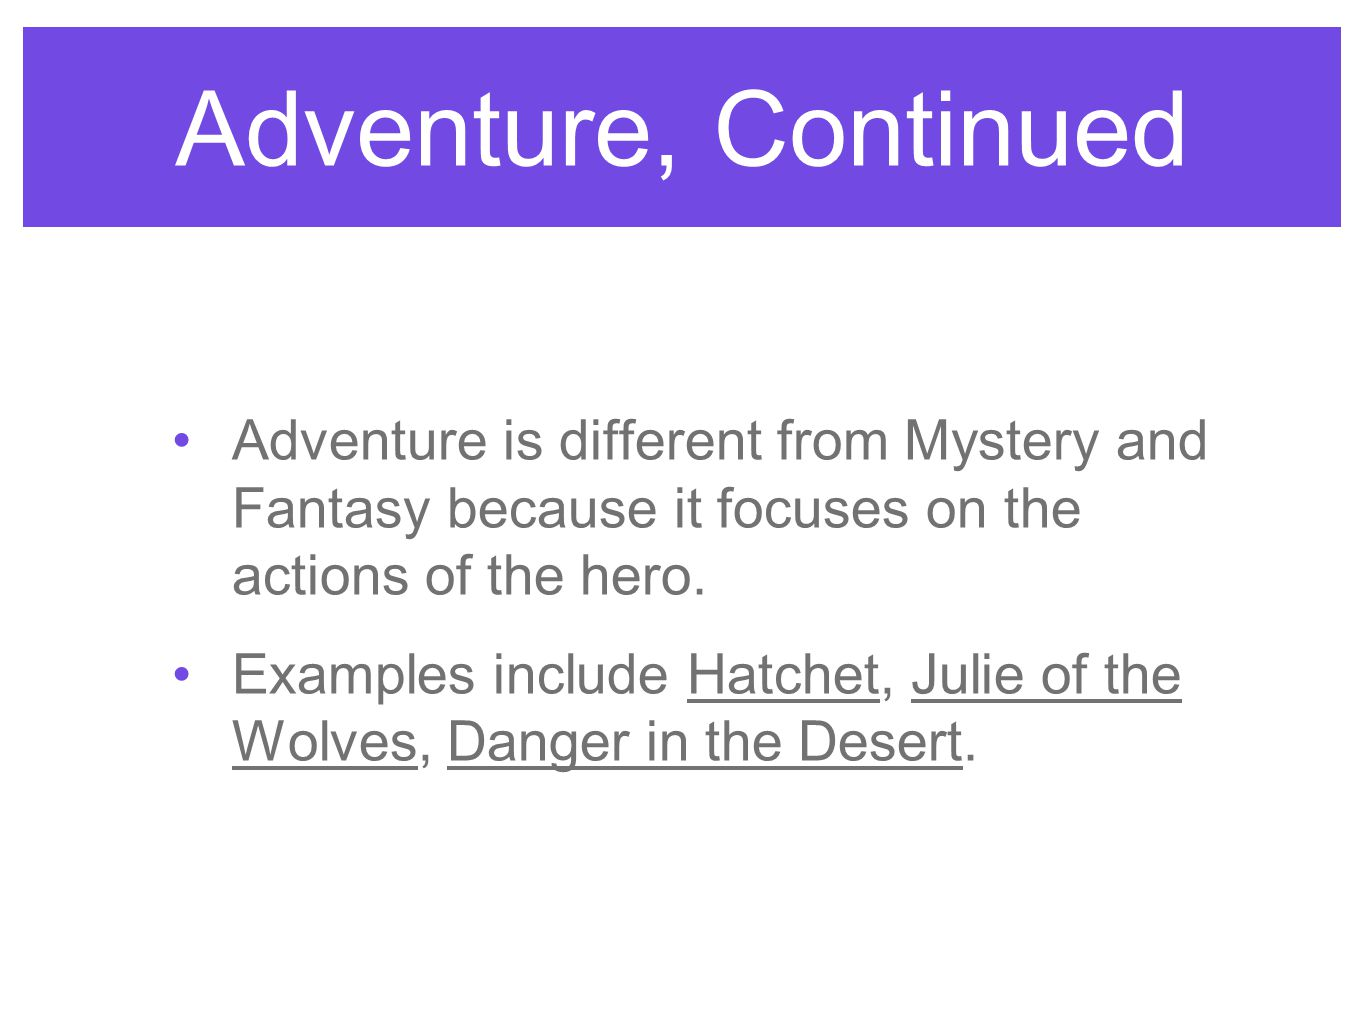 Adventure, Continued Adventure is different from Mystery and Fantasy because it focuses on the actions of the hero.